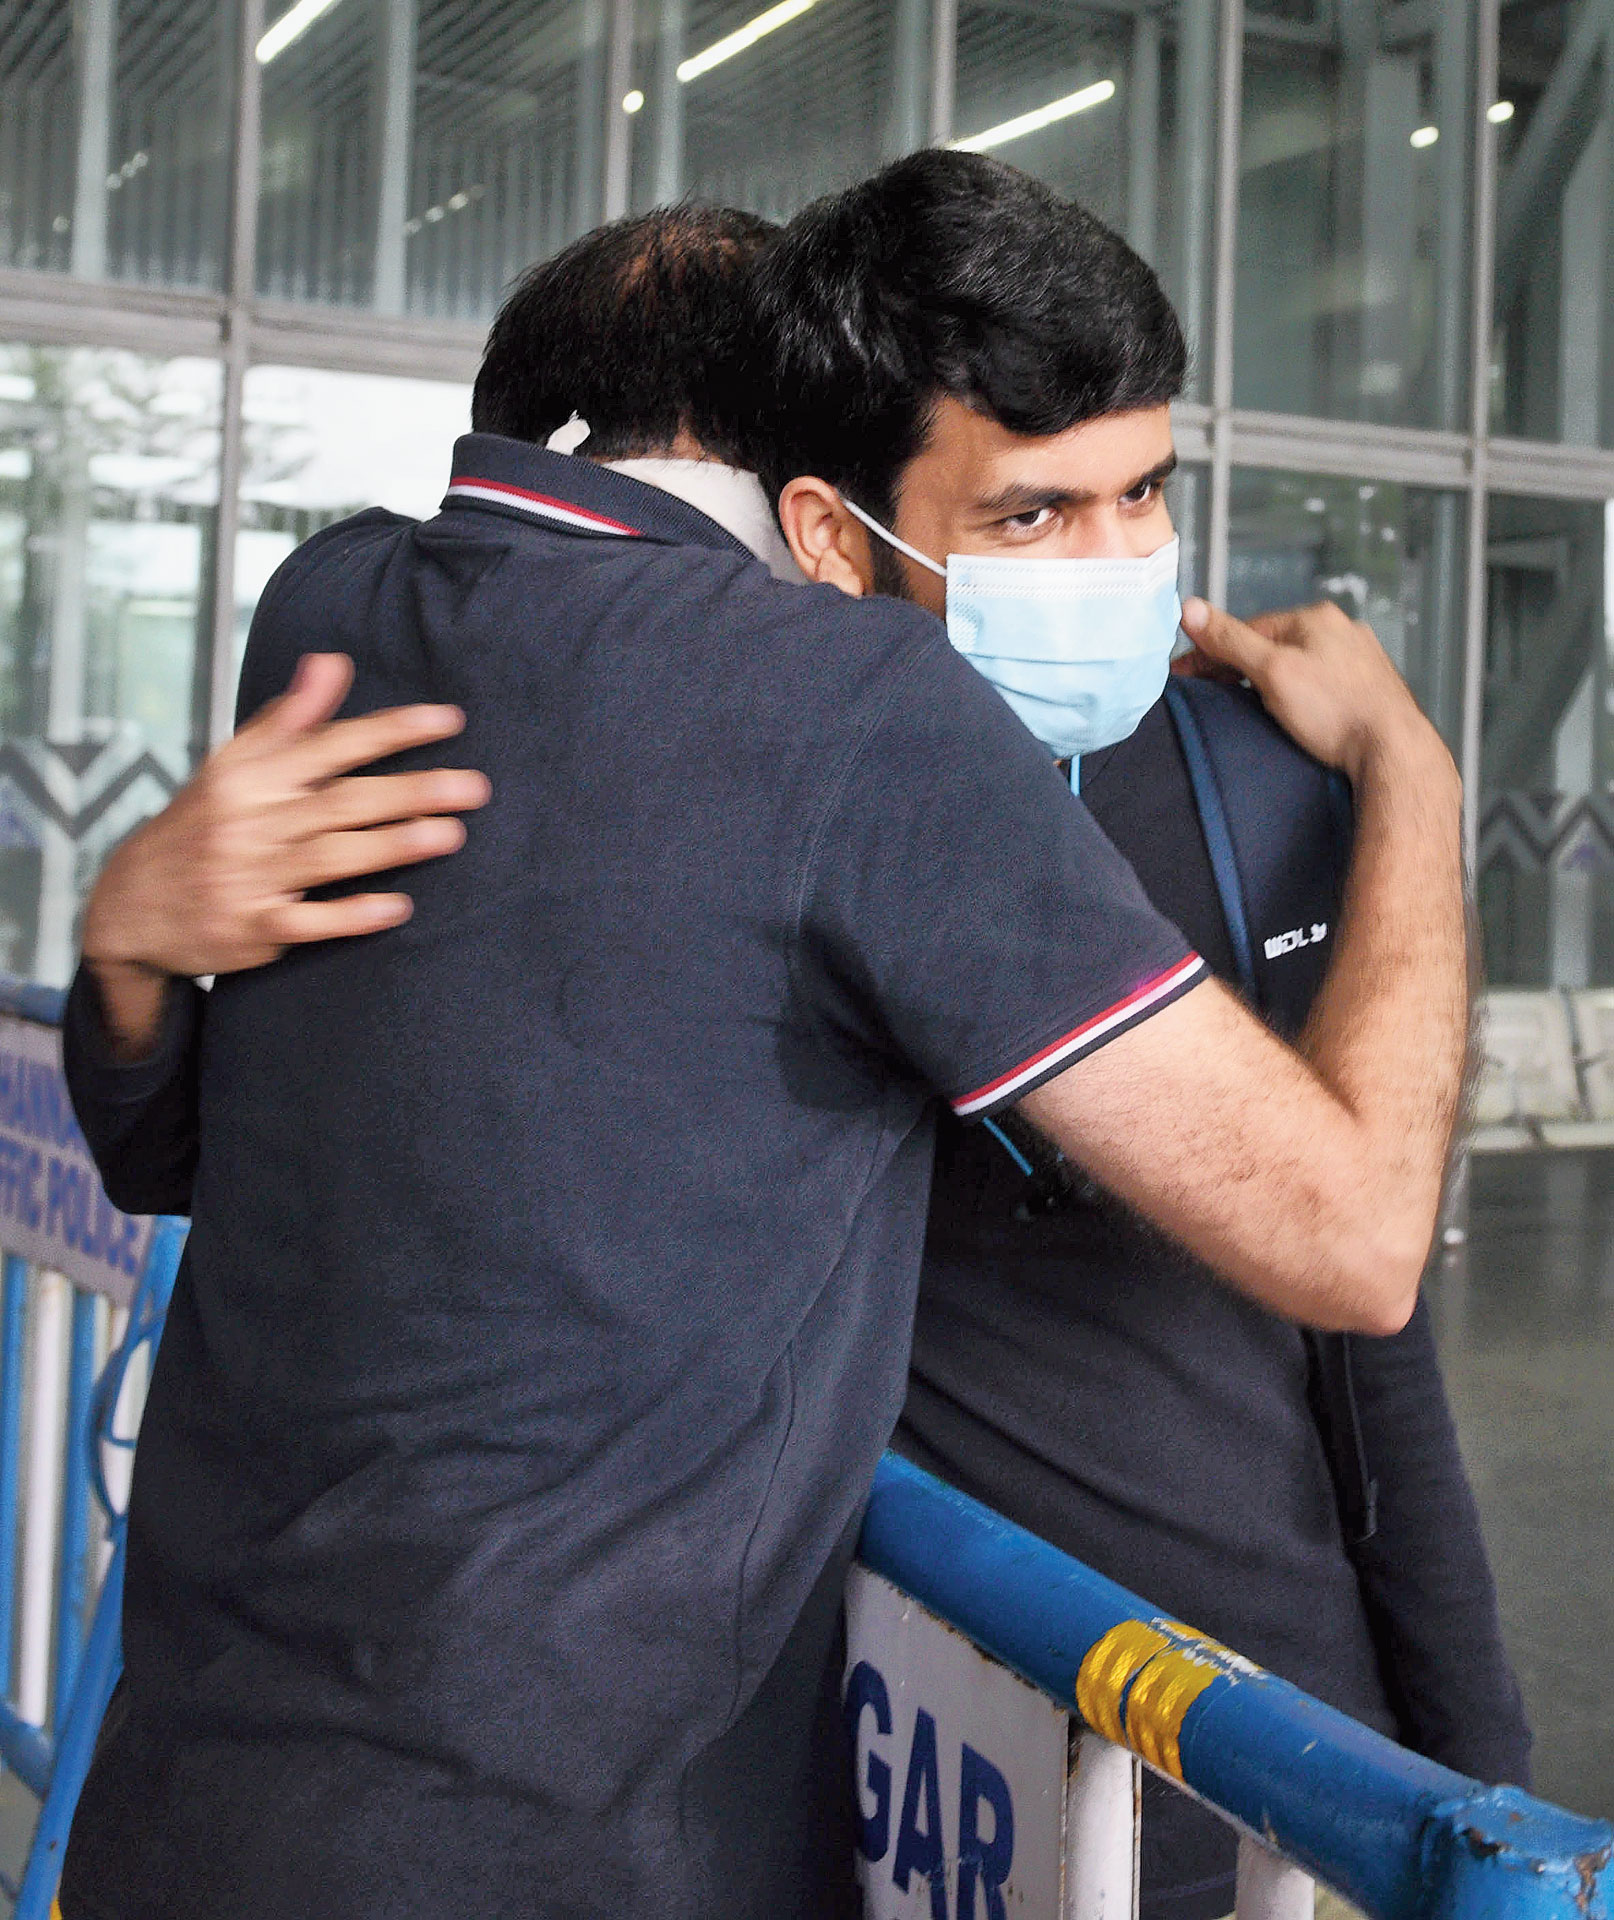 BD Sharma hugs his son Yash as he steps out of the airport's terminal building.